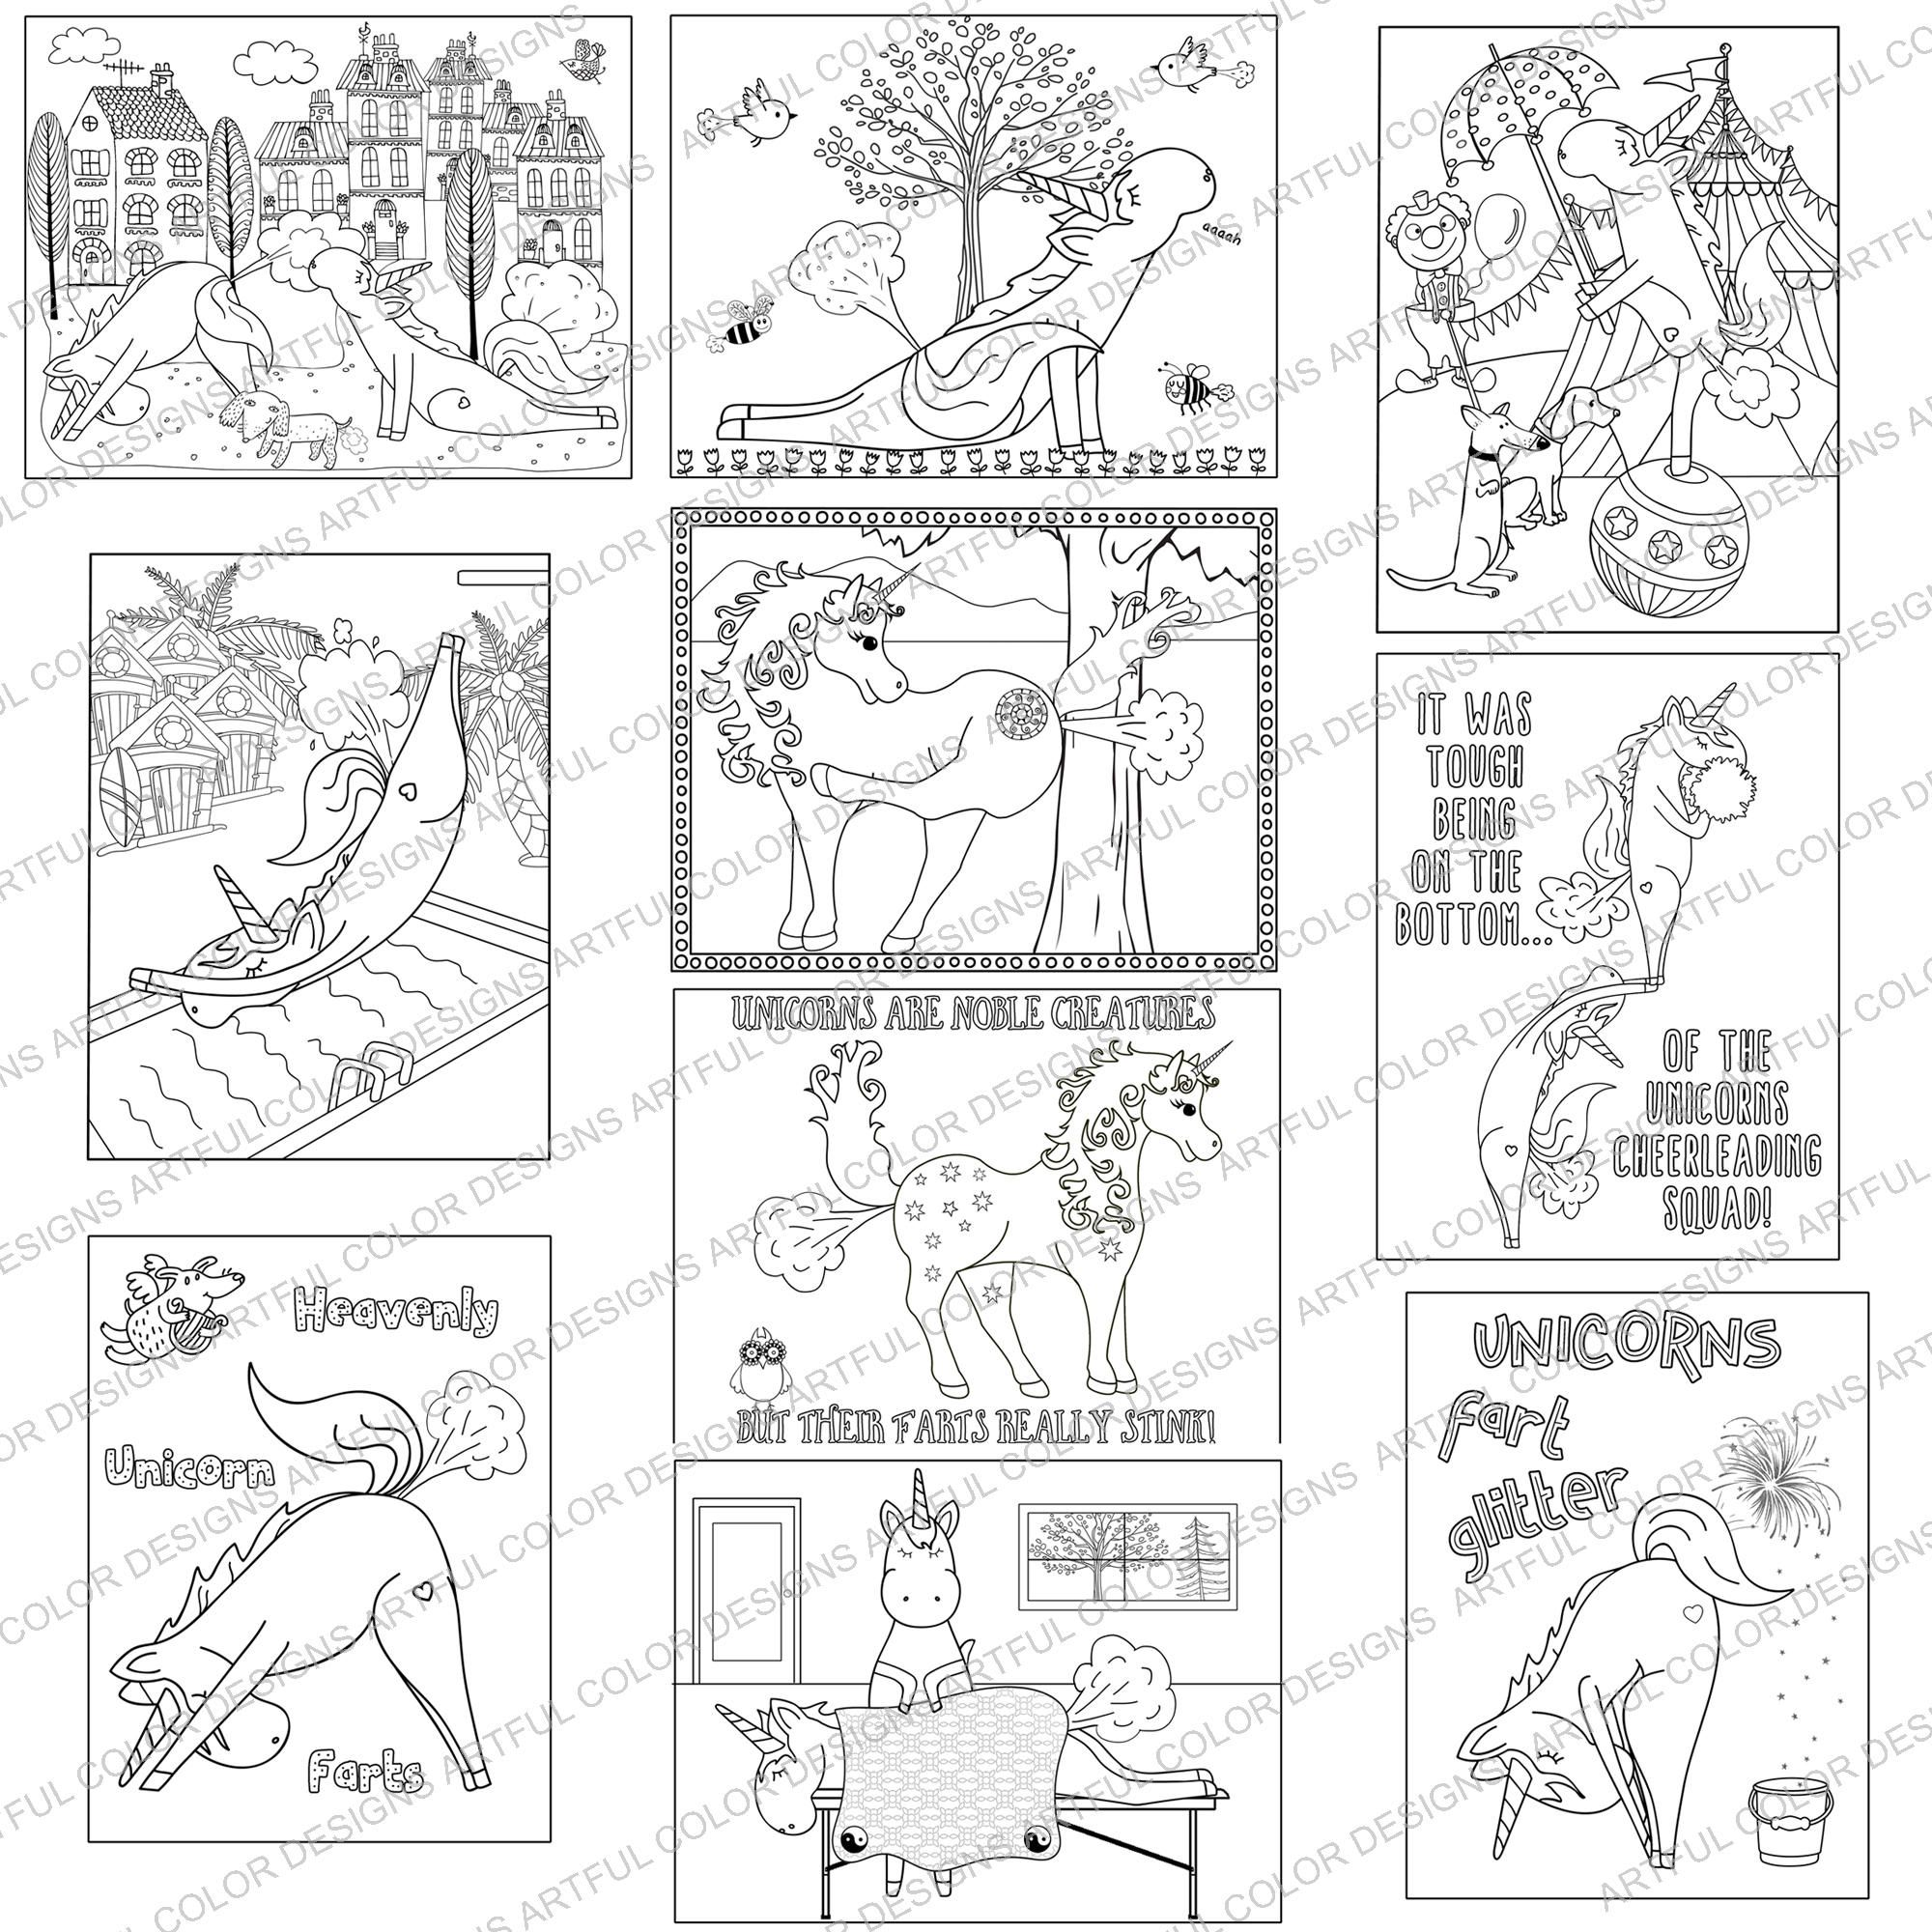 Coloring book download zip - Printable Coloring Book Unicorns Farting Fun And Unique Digital Download Book With 20 Images Hilarious Pictures To Color In For All Ages